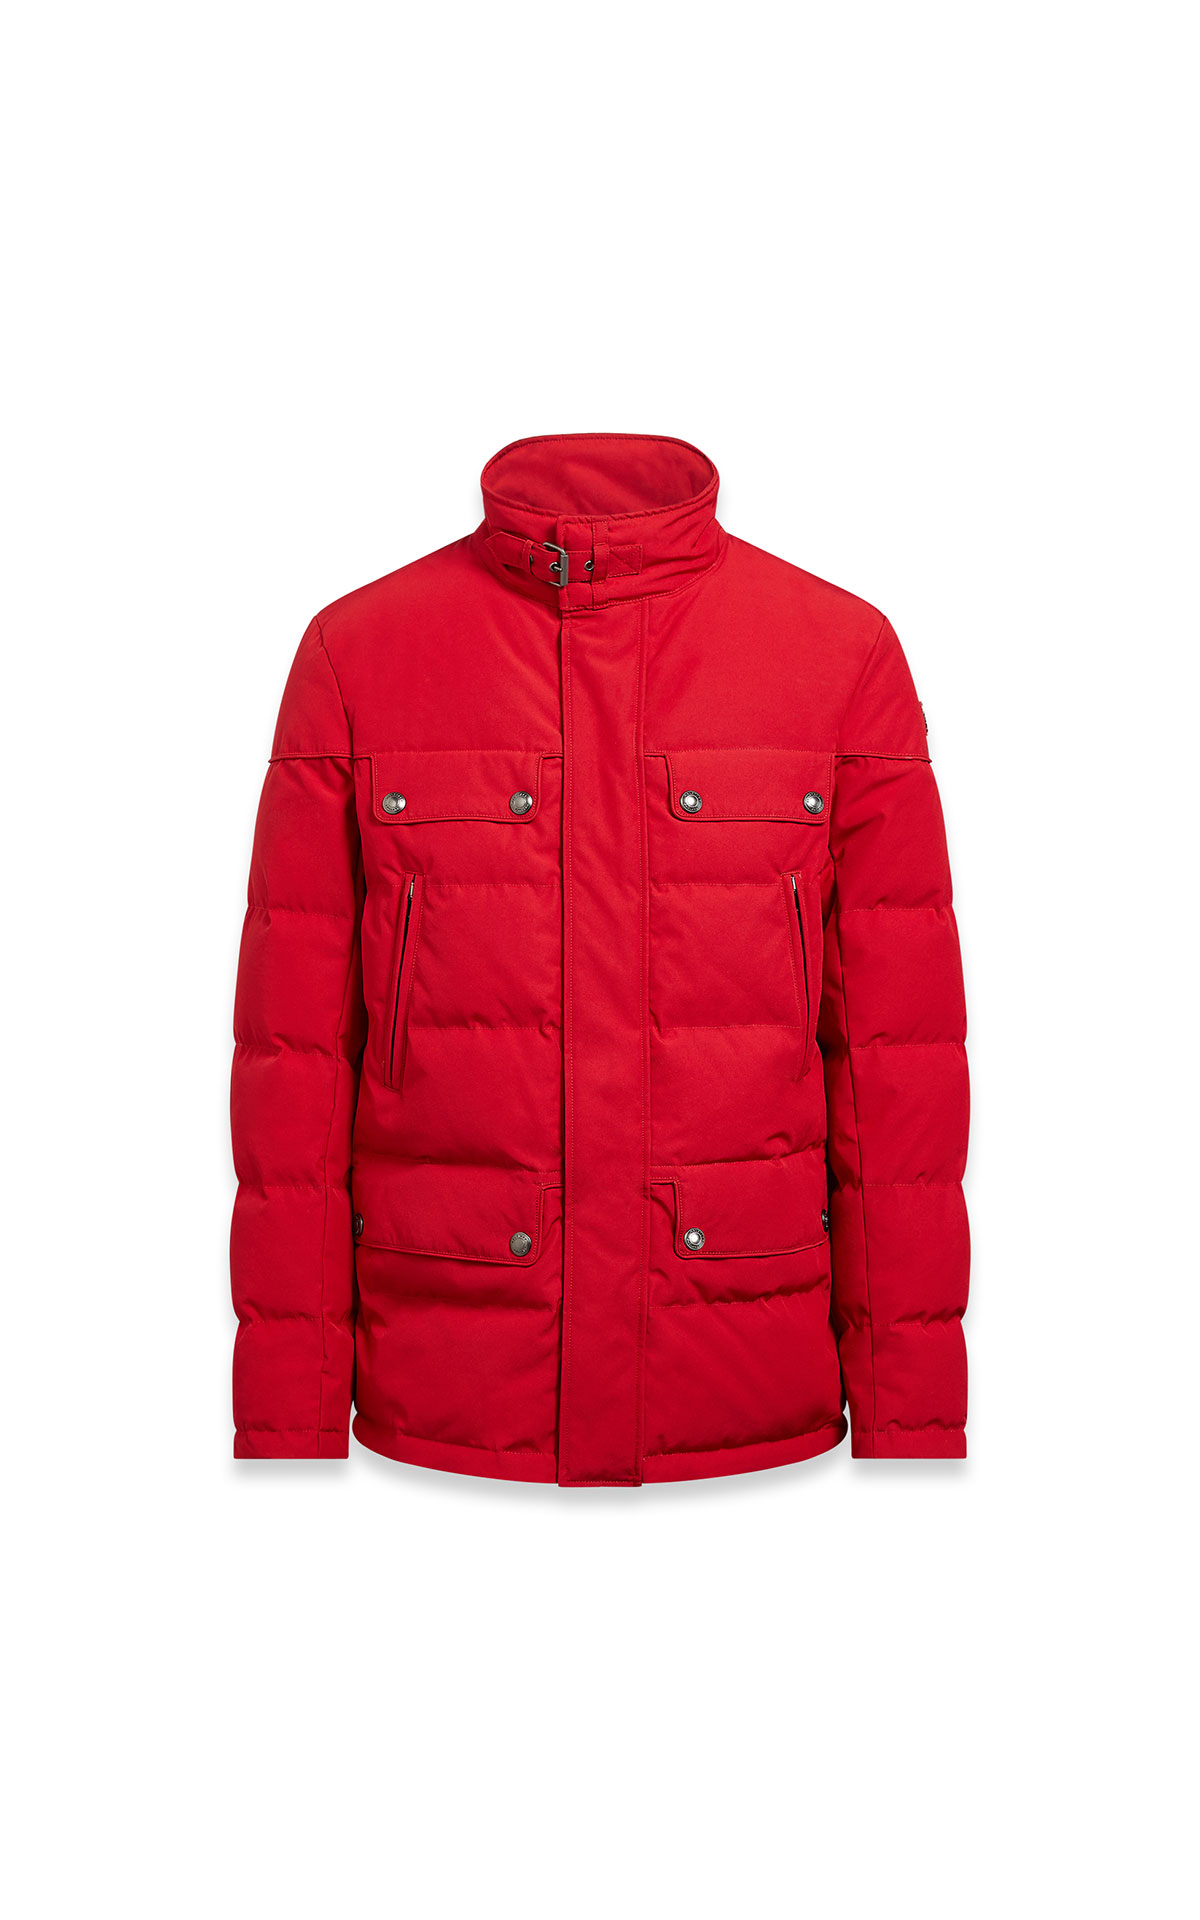 Belstaff Mountain jacket from Bicester Village